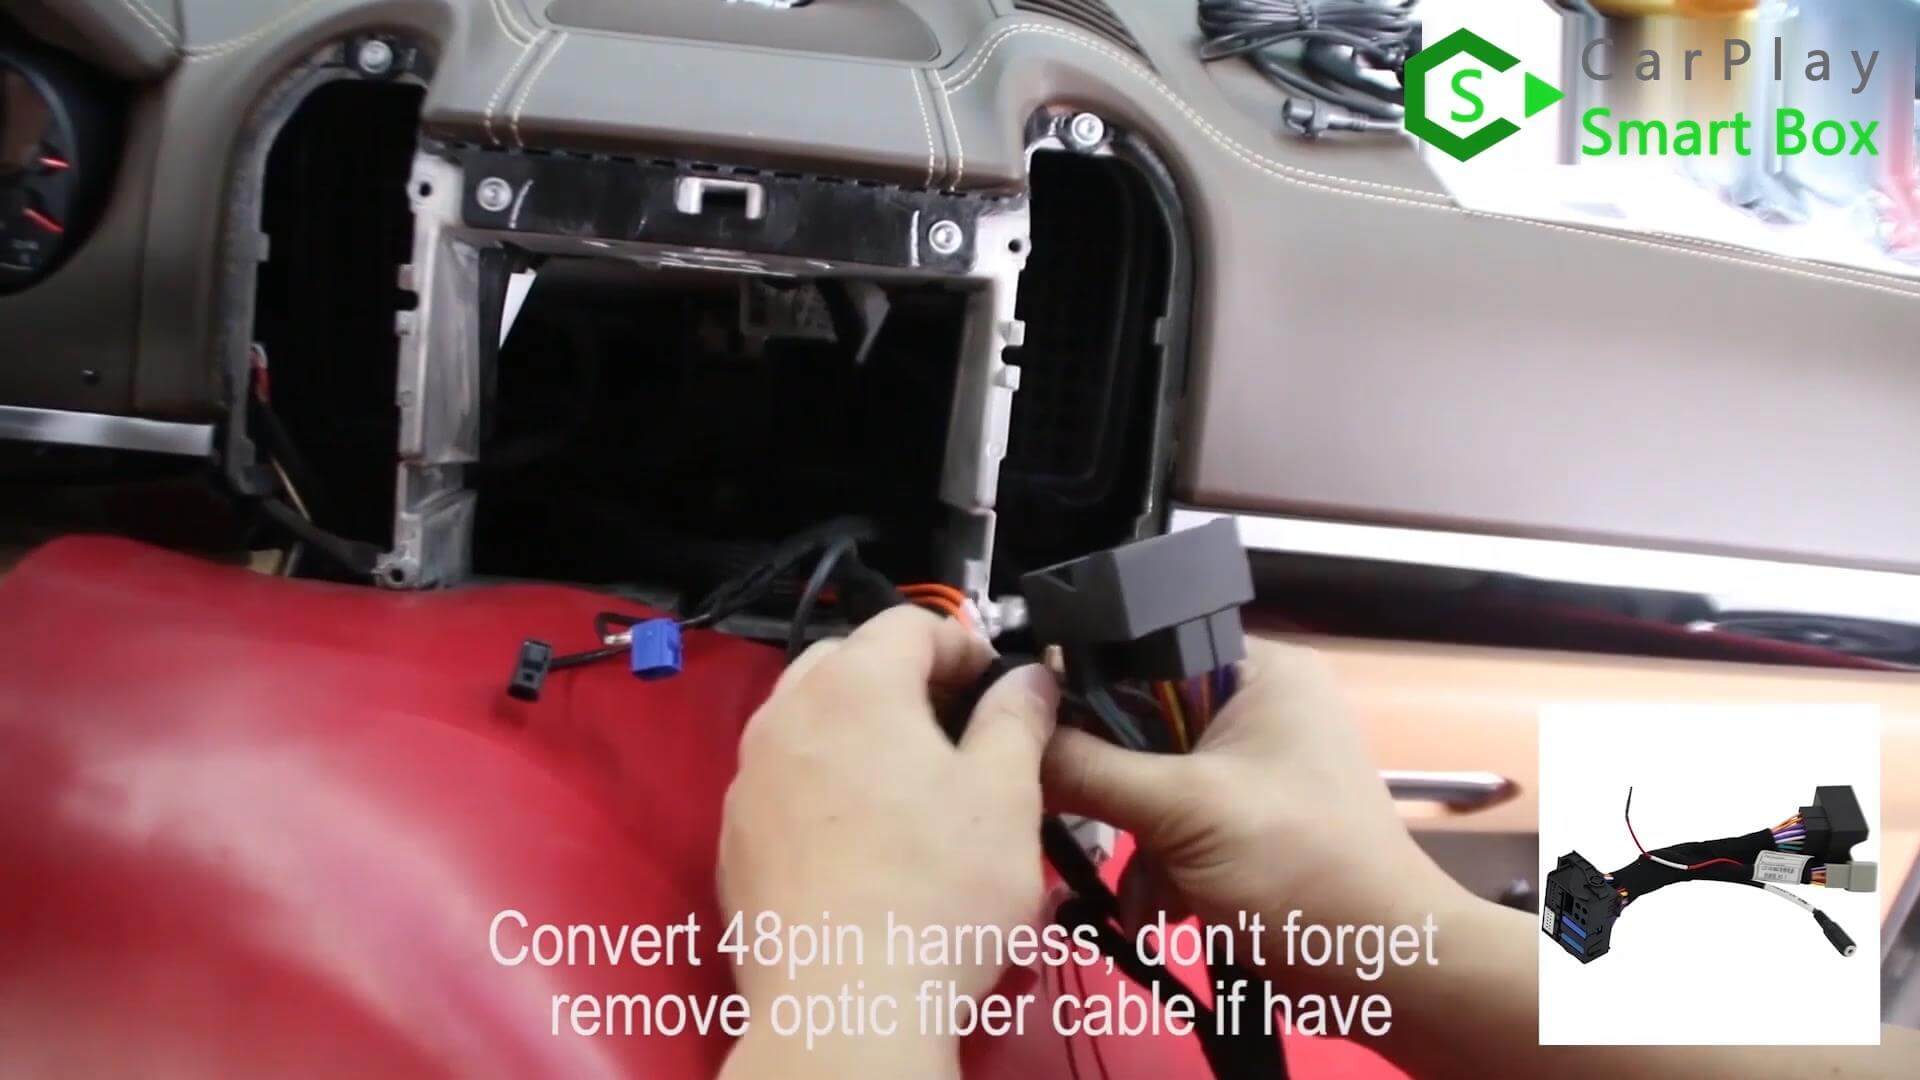 8. convert 48PIN harness, don't forget remove optic fiber cable if have -  Step by Step Retrofit Porsche Cayenne PCM3.1 WIFI Wireless Apple CarPlay - CarPlay Smart Box